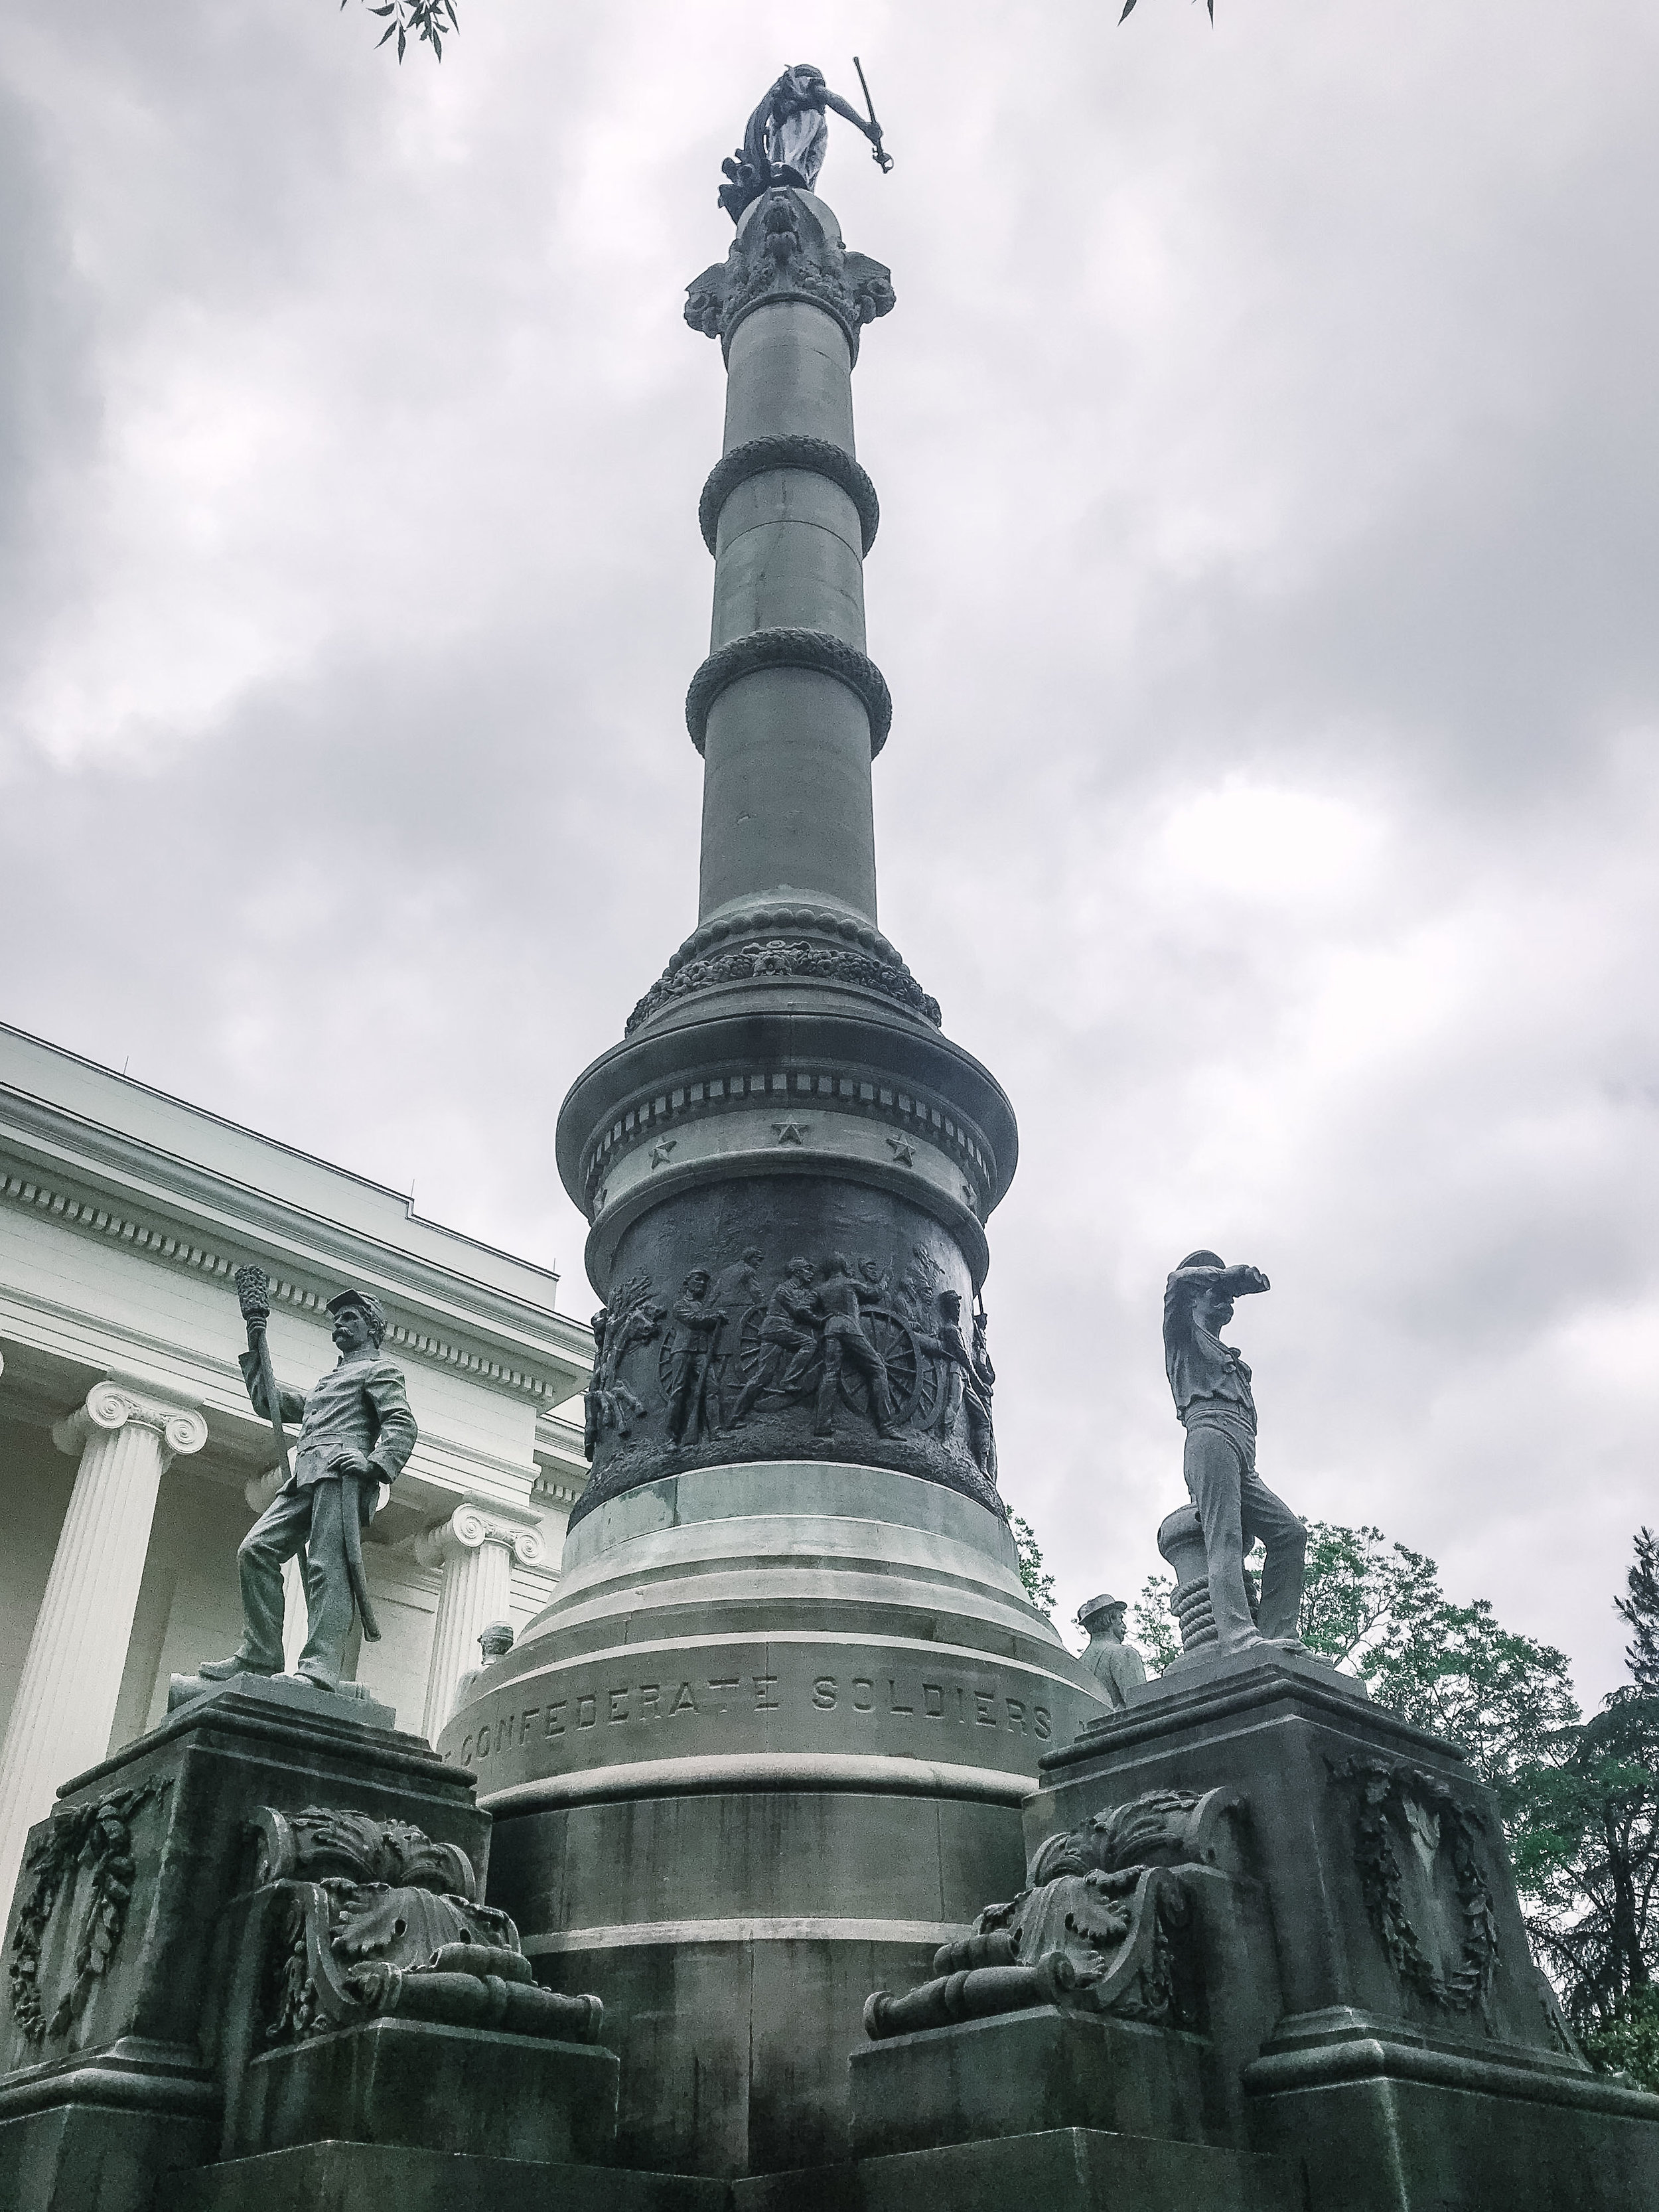 Confederate monument on the steps of the Alabama State Capital building.